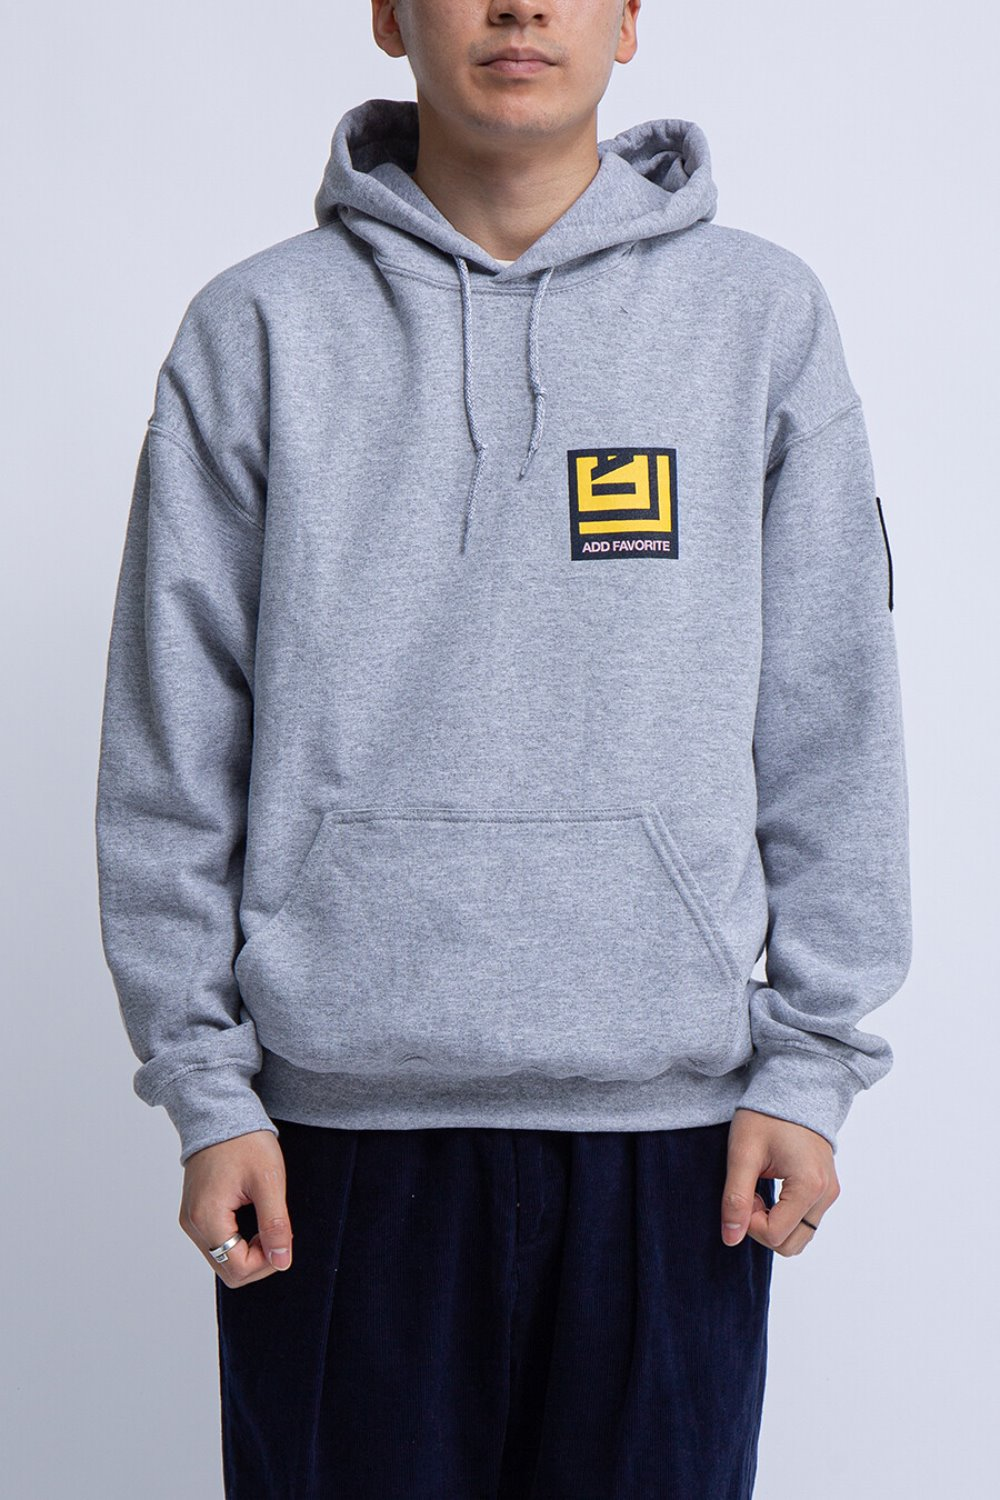 PRINTED HOODY GREY ADD FAVORITE PRINT